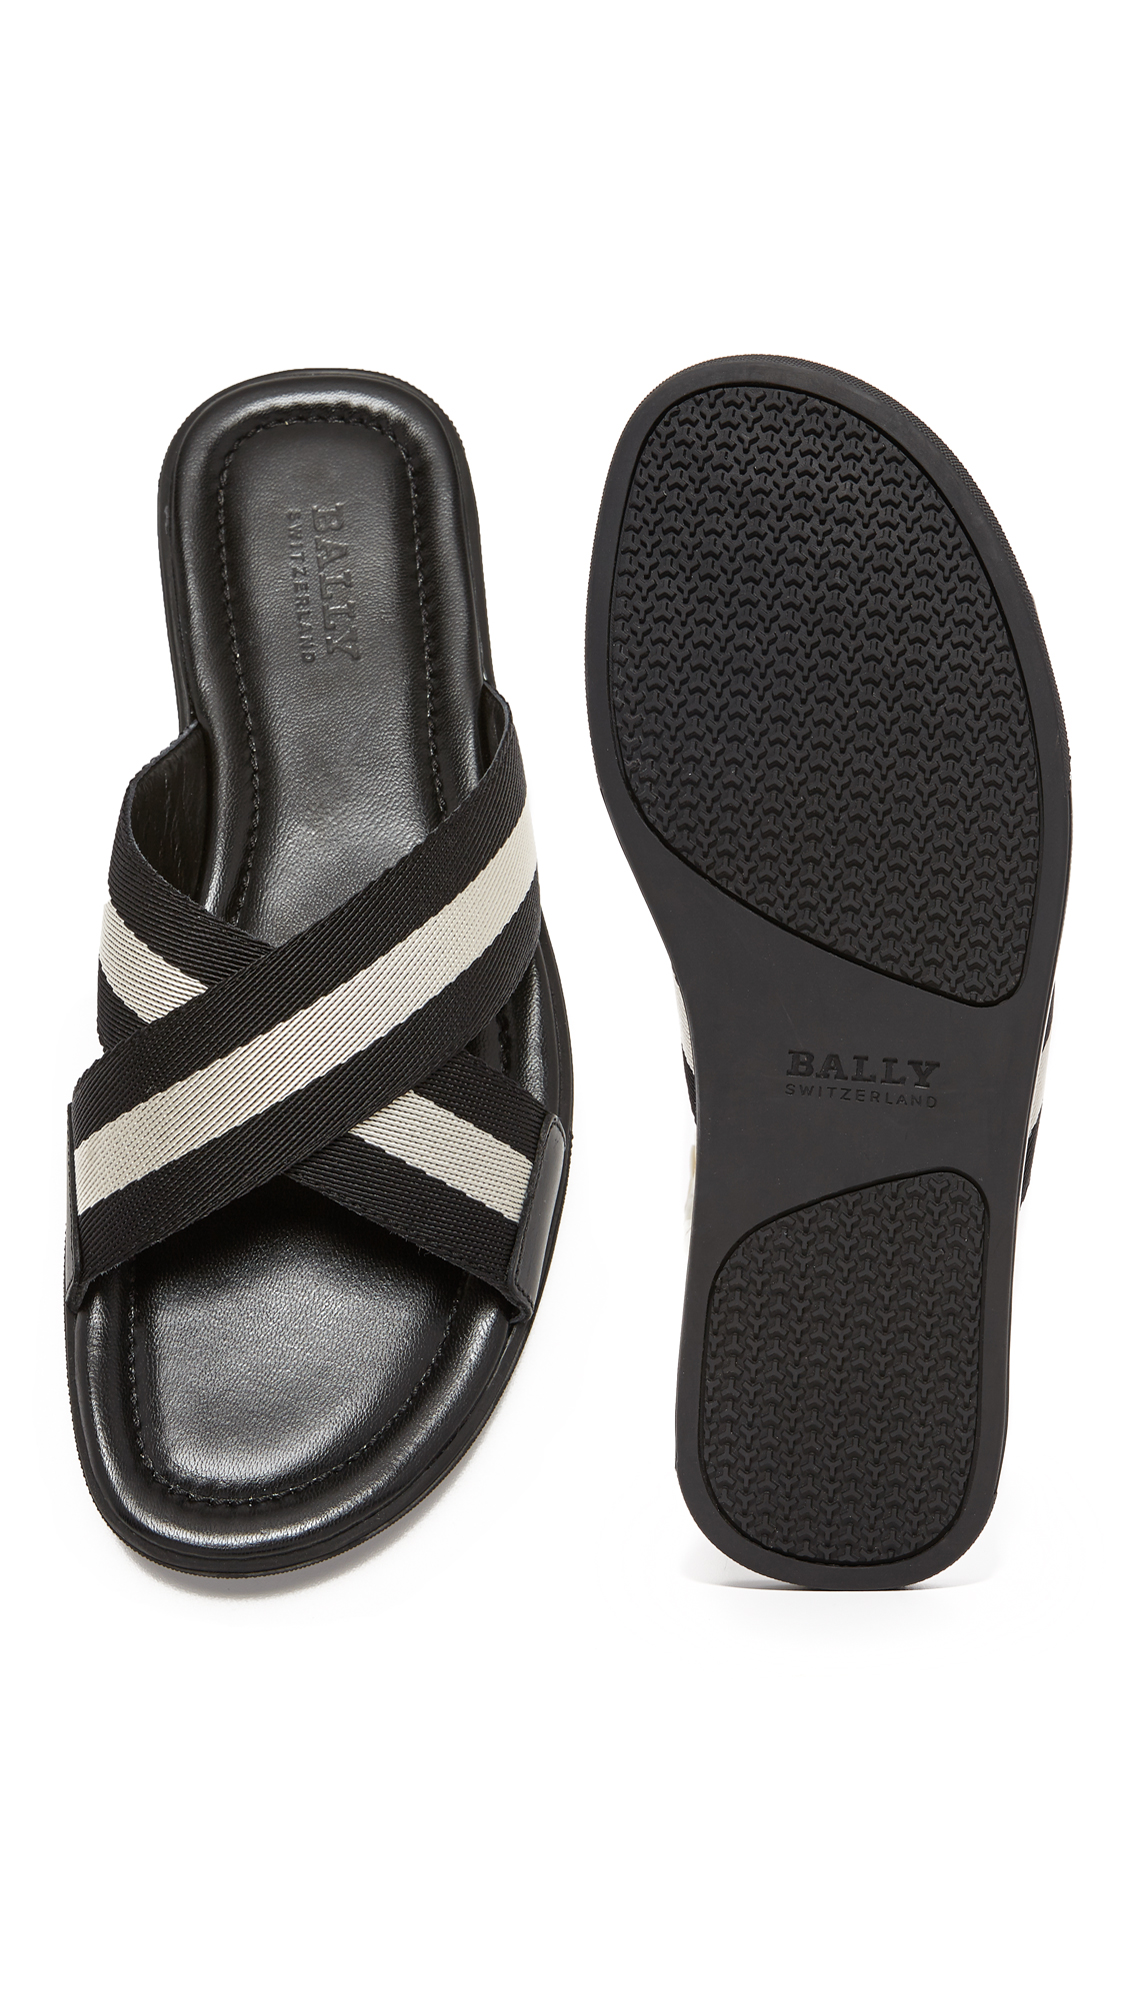 61340e084fd3 Bally Bonks Slide Sandals